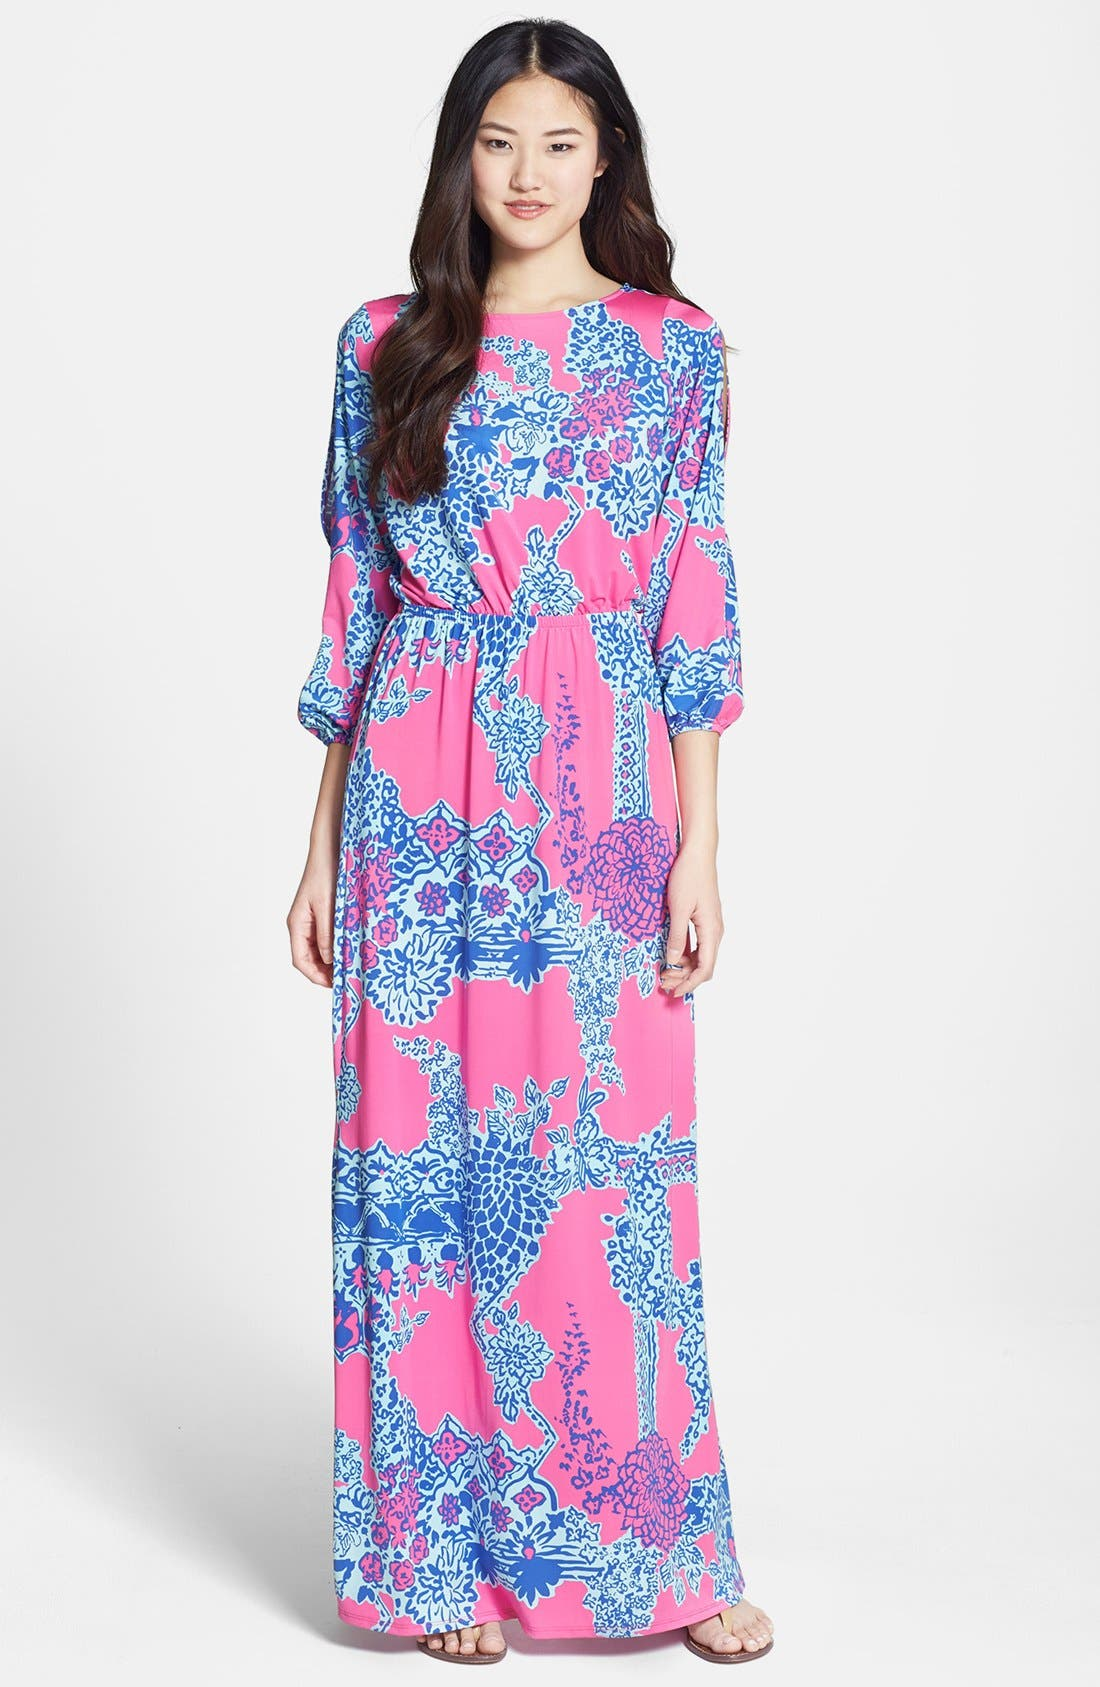 Alternate Image 1 Selected - Lilly Pulitzer® 'Ashlynn' Print Jersey Maxi Dress